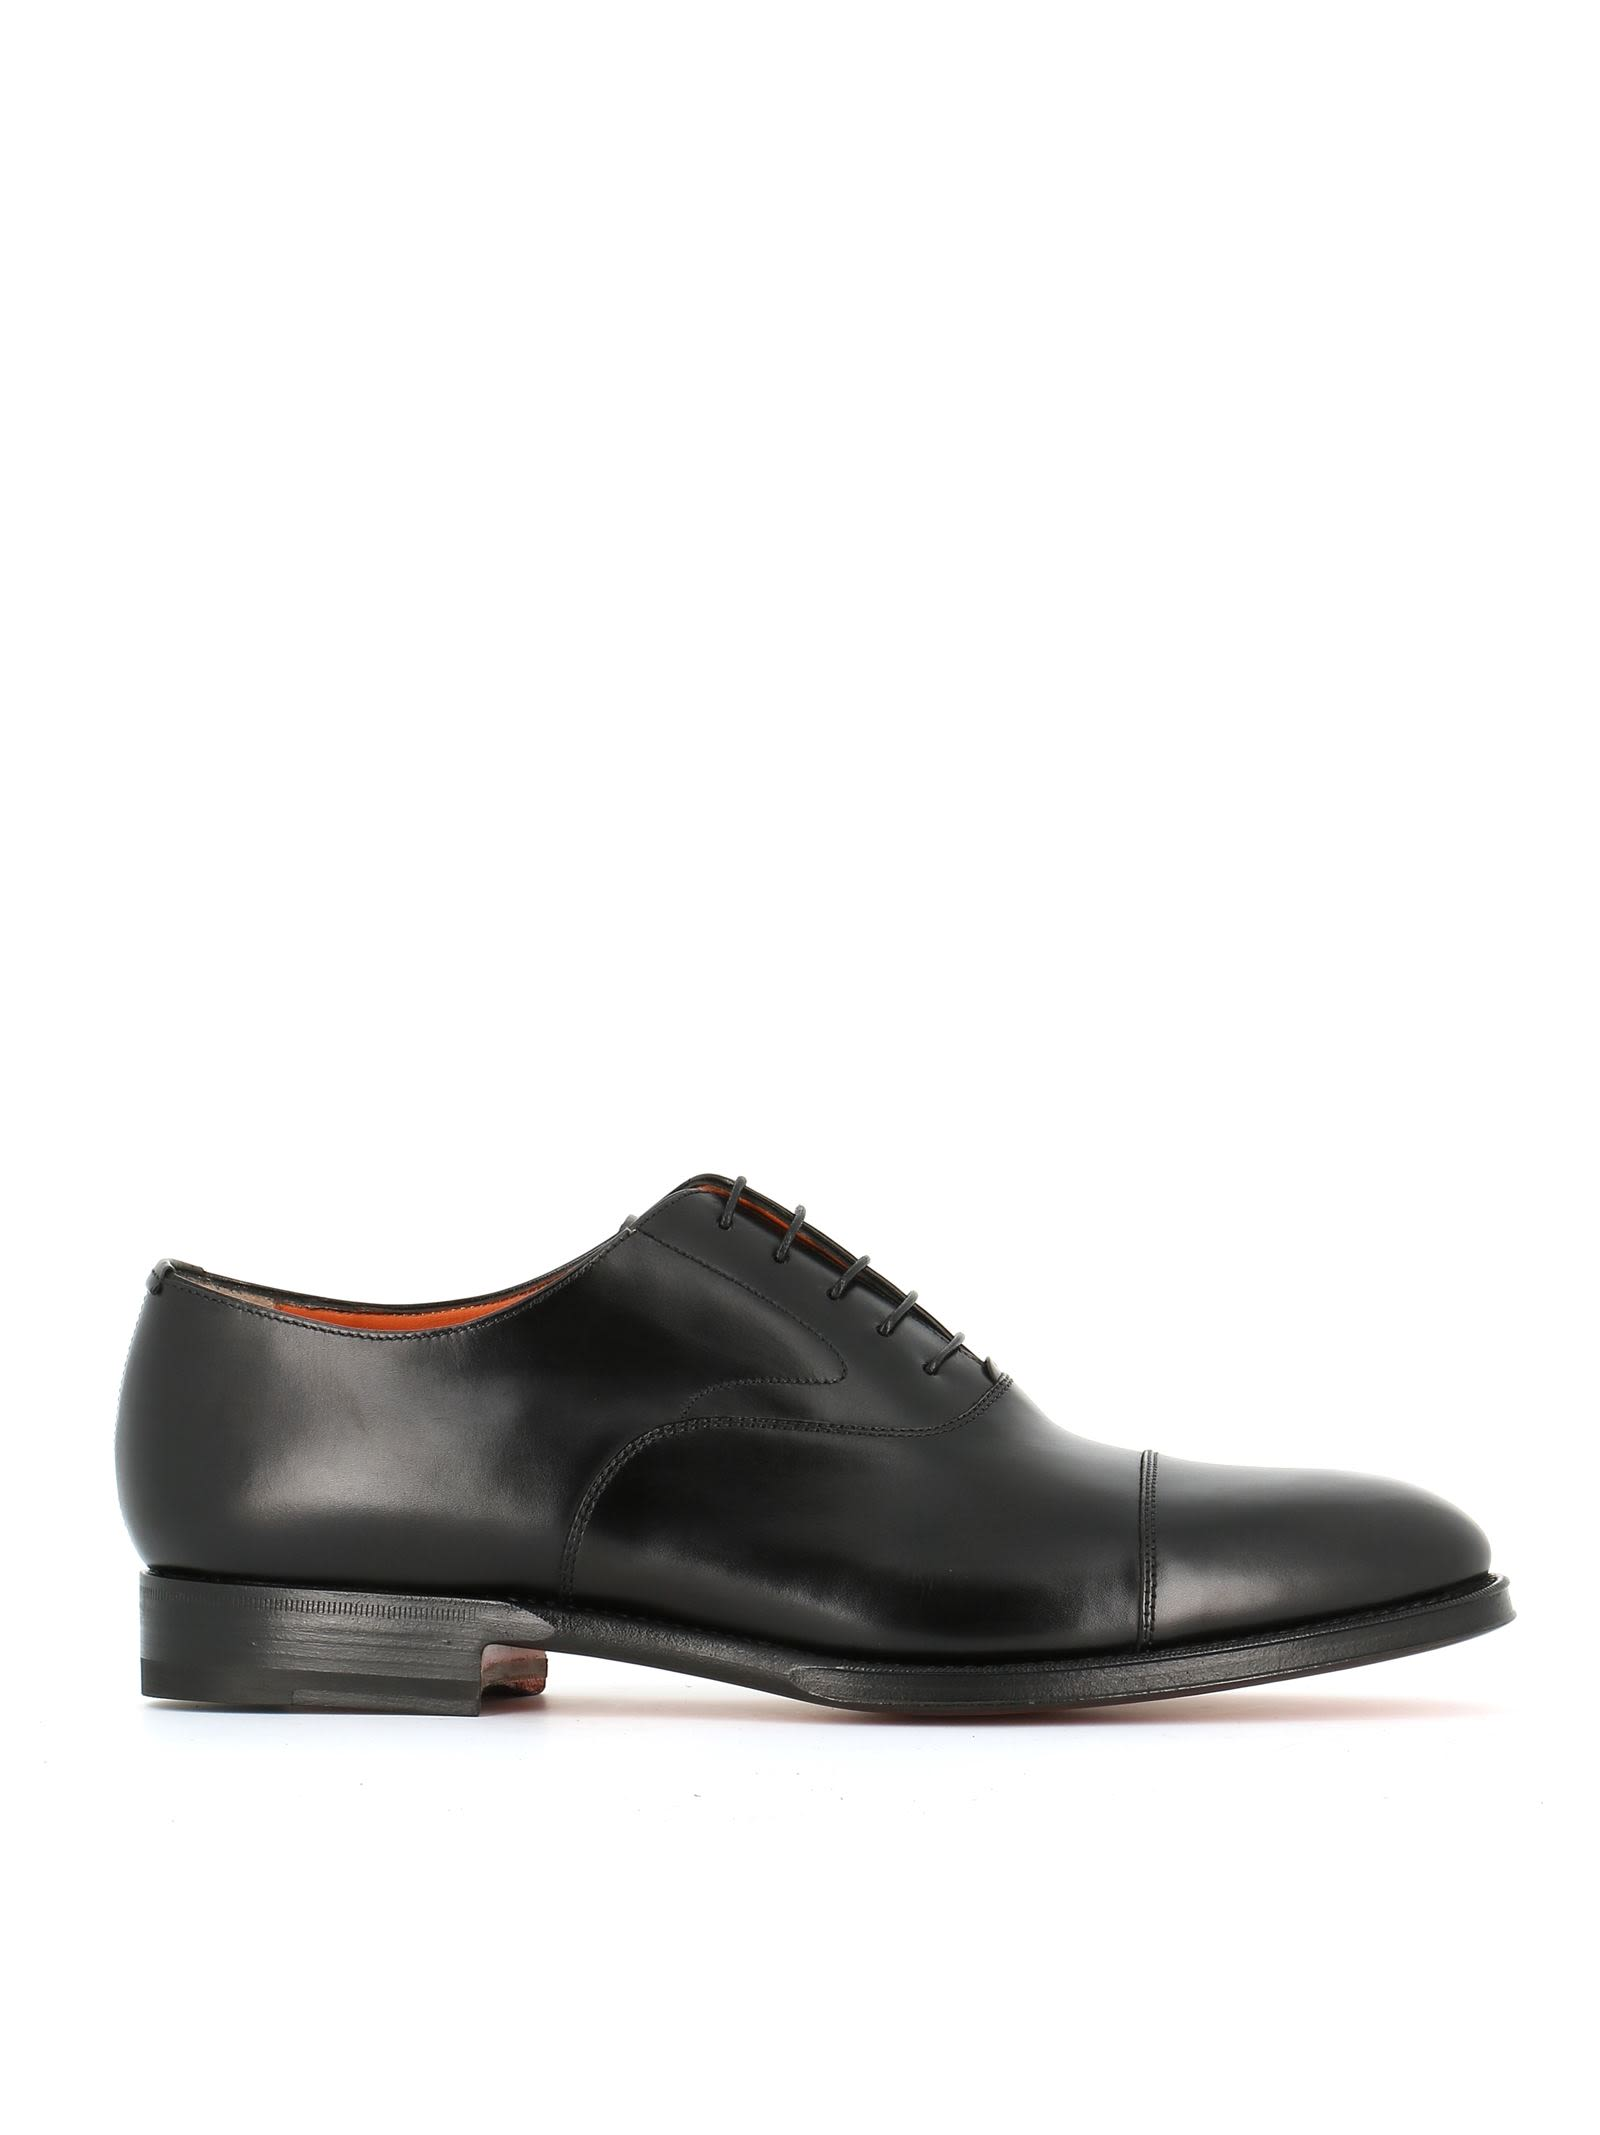 Cheapest classic oxford shoes - Black Santoni Buy Cheap 2018 New How Much Online Buy Cheap Limited Edition 4YZx4s4